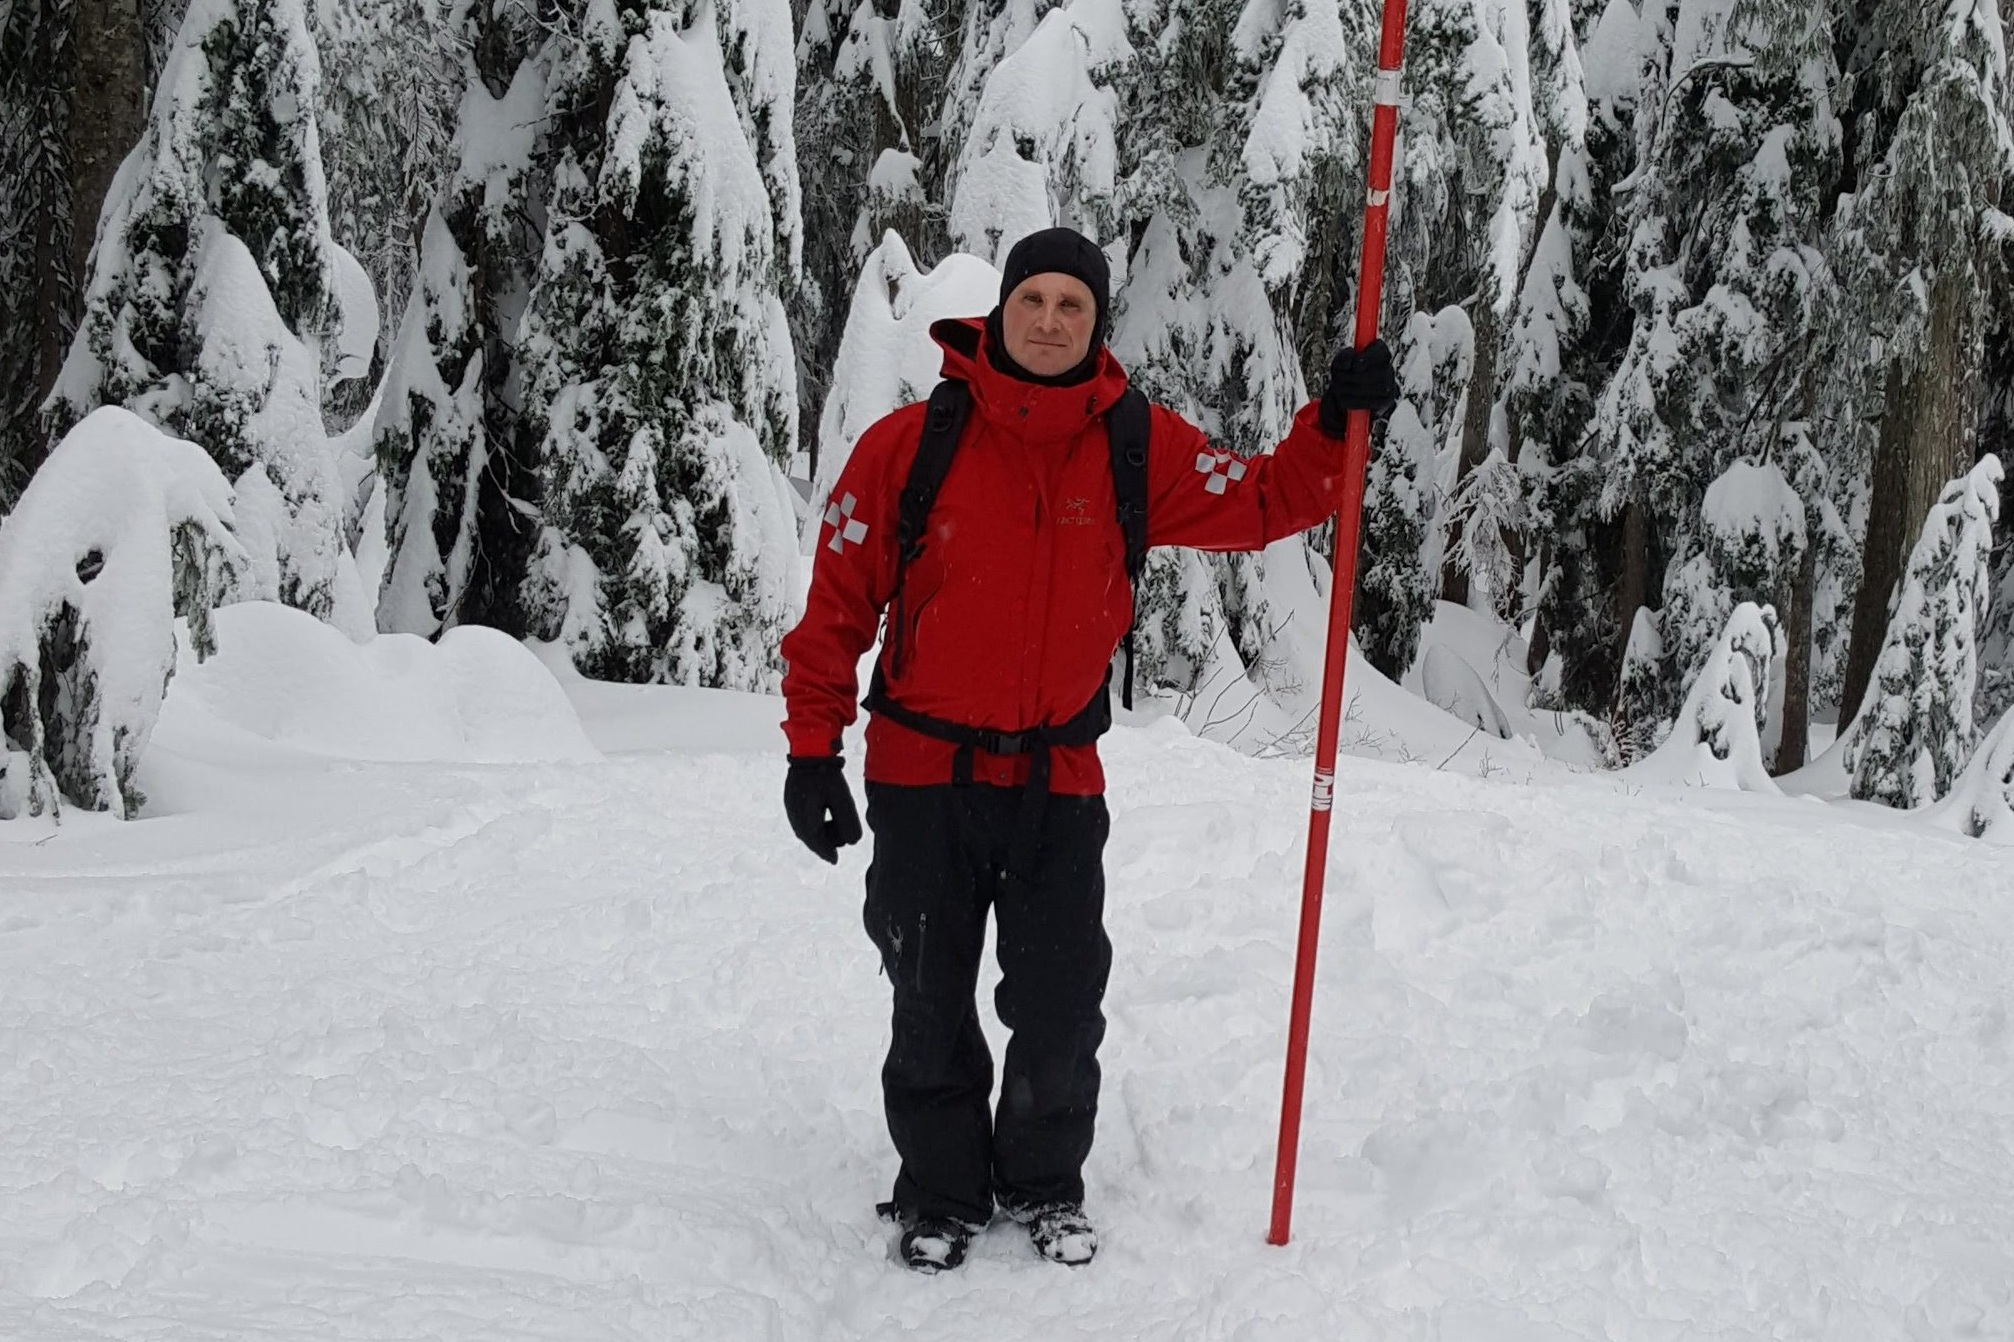 Kieran Hartle (PCP-IV)  is paramedic with the British Columbia Ambulance Service, and a Nordic Ski Patroller at Cypress Mountain. In 2018, Kieran became one of Canada's first Red Cross Wilderness First Responder Instructors, and has contributed scenarios and feedback that serve as the foundation of that program.